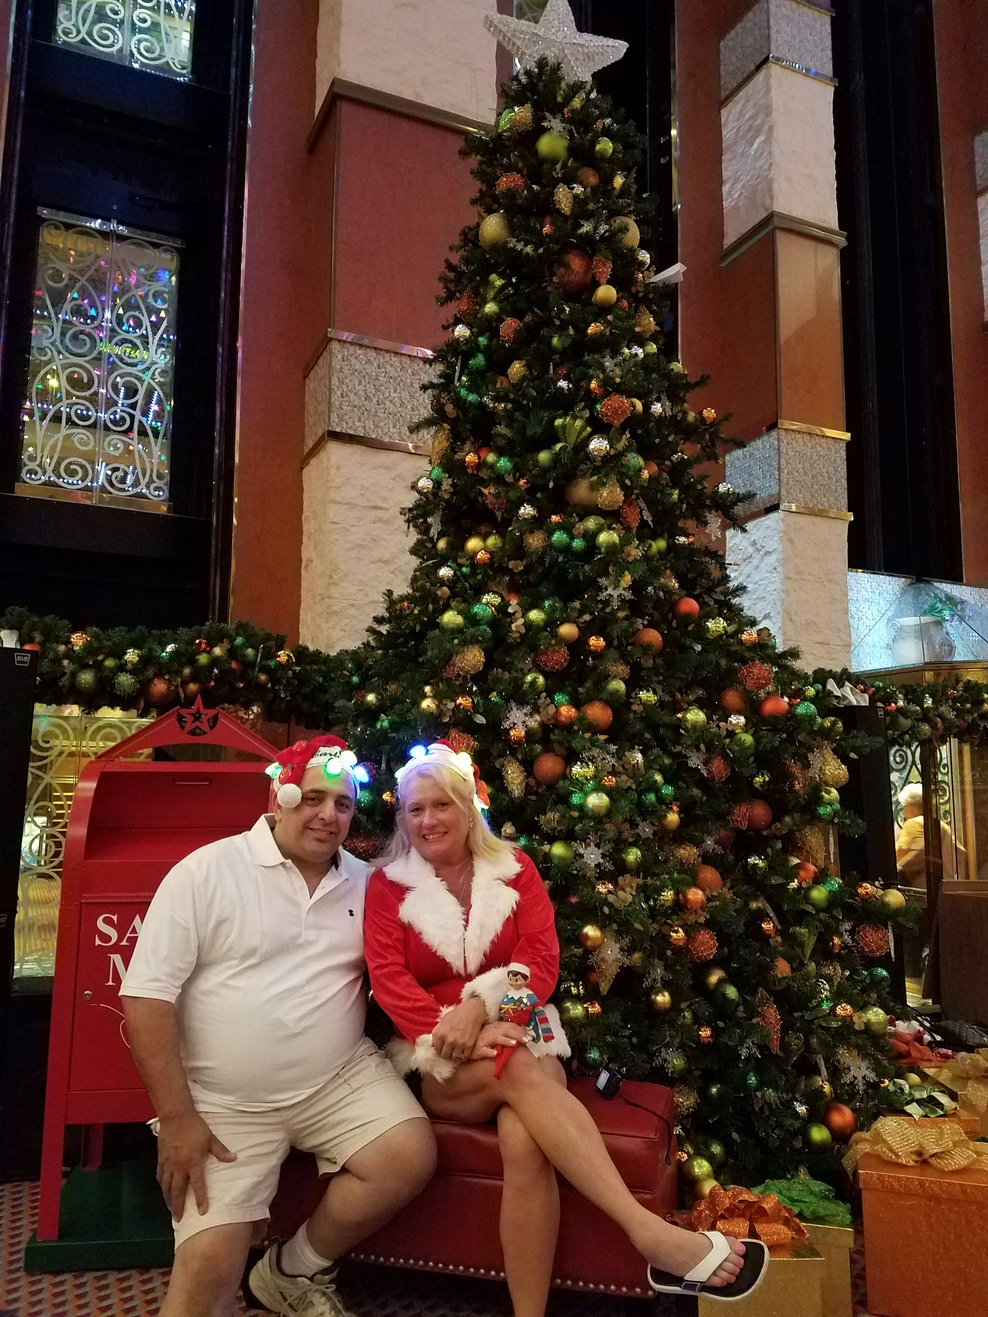 We highly recommend the carnival liberty. 4 days filled with fun and holiday spirit